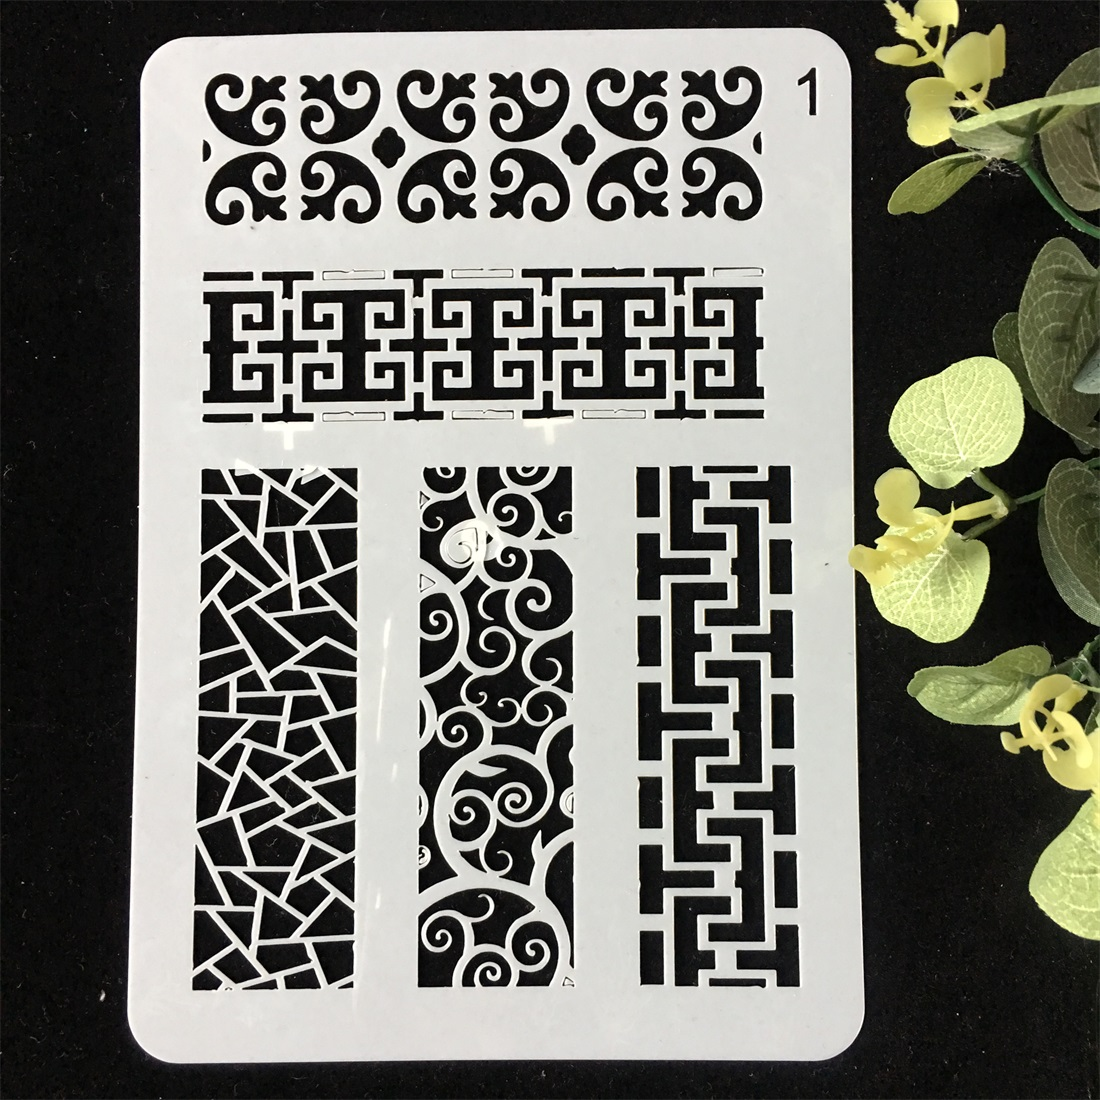 1Pcs 20x14cm Rectangle Frame DIY Layering Stencils Wall Painting Scrapbook Coloring Embossing Album Decorative Card Template